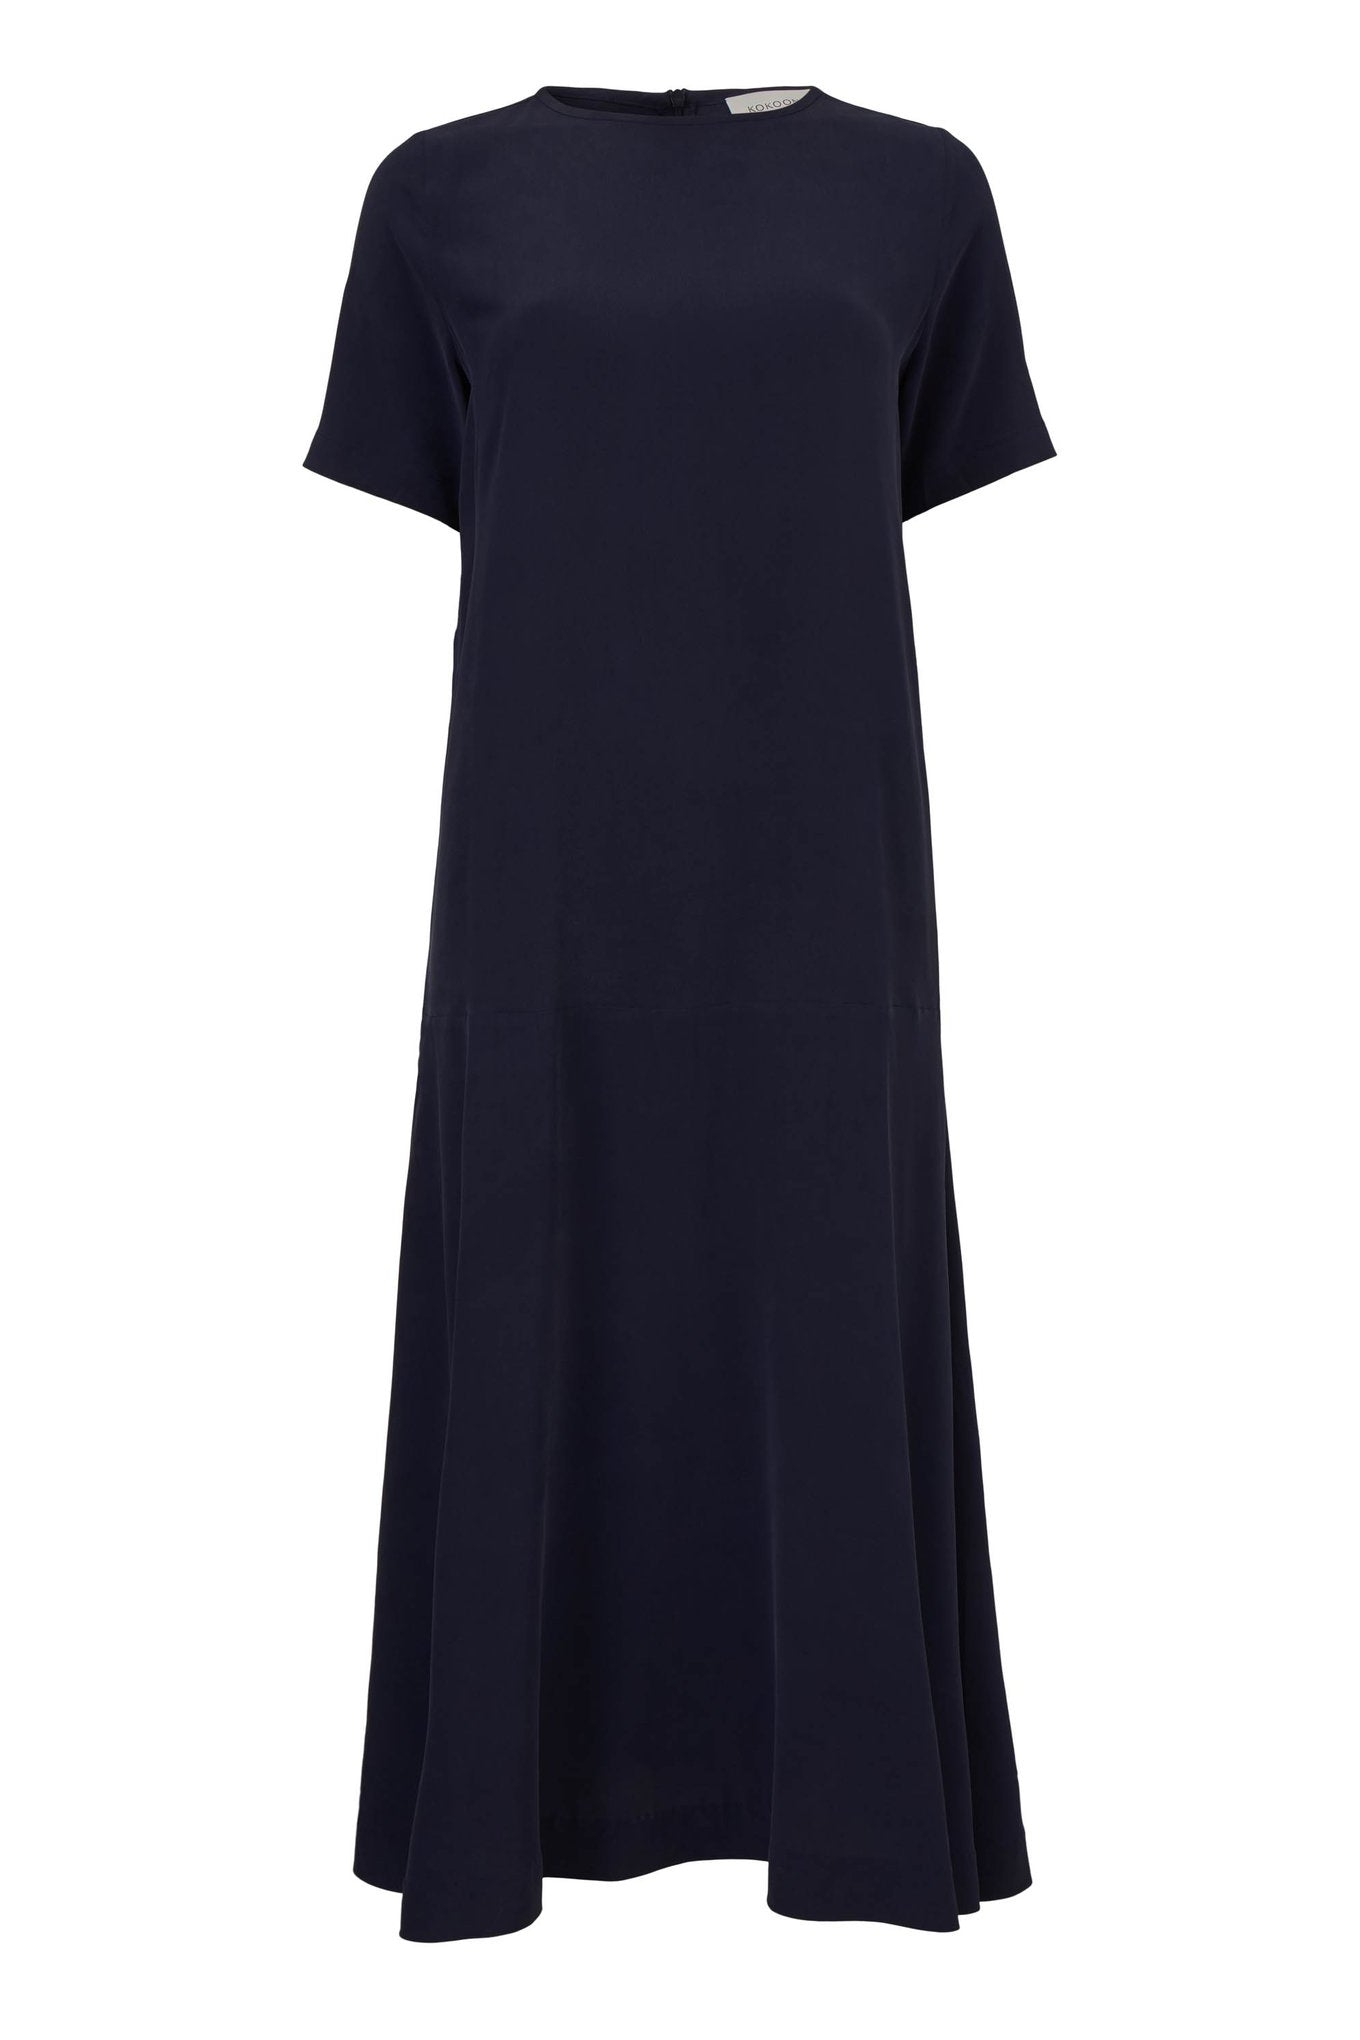 HOLDEN DRESS - NAVY